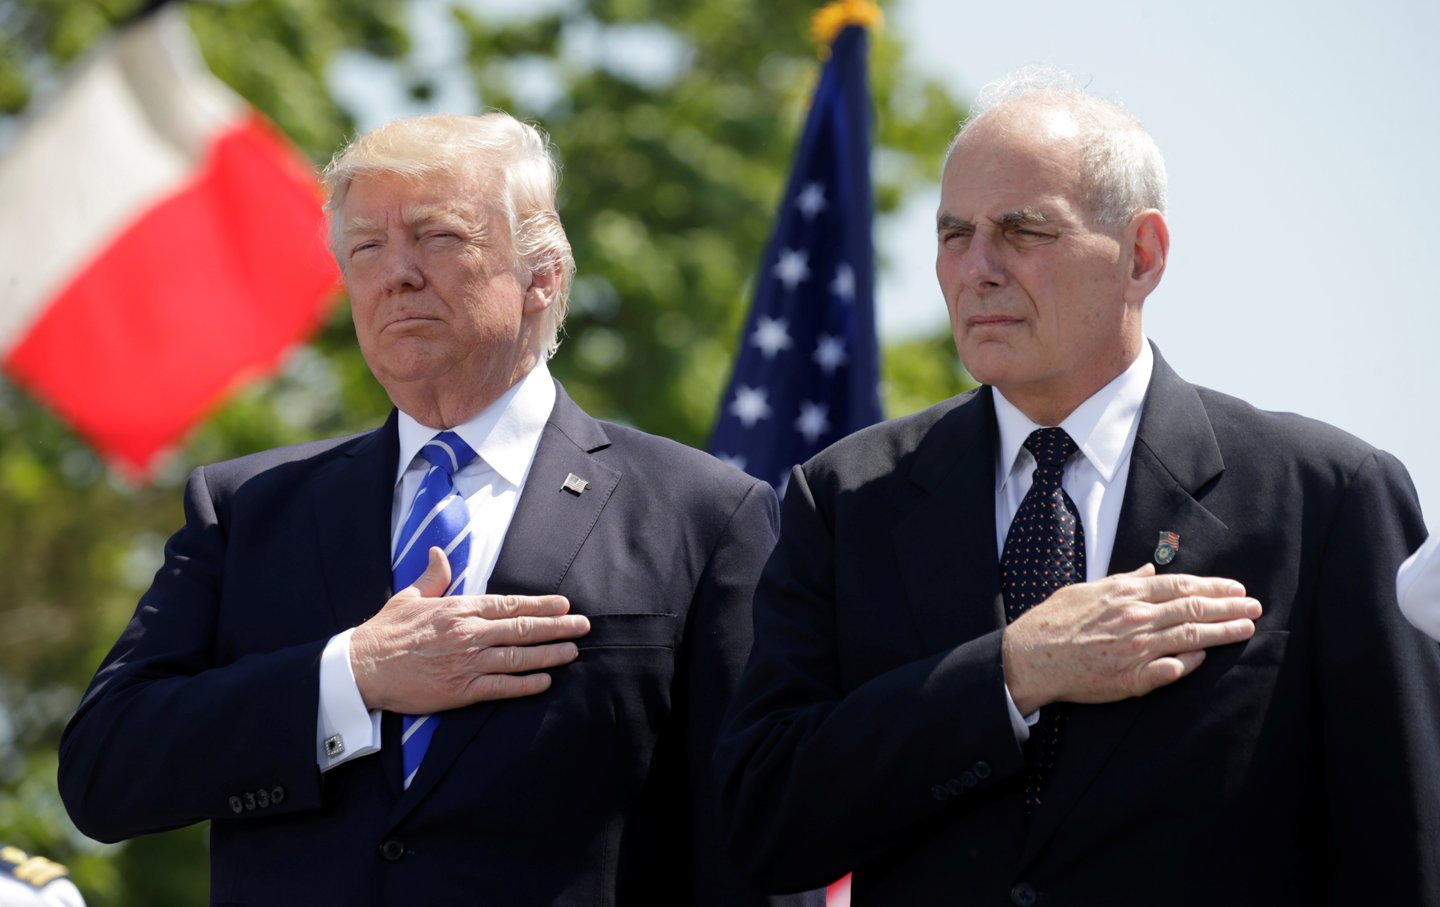 Chinese security officers attempted to stop the American military aide carrying the nuclear football from following President Trump into the Great Hall of the People in Beijing in November. Axios reported Sundaythe decision set off a chain of events that led chief of staff John Kelly to intervene and get in a physical altercation with …